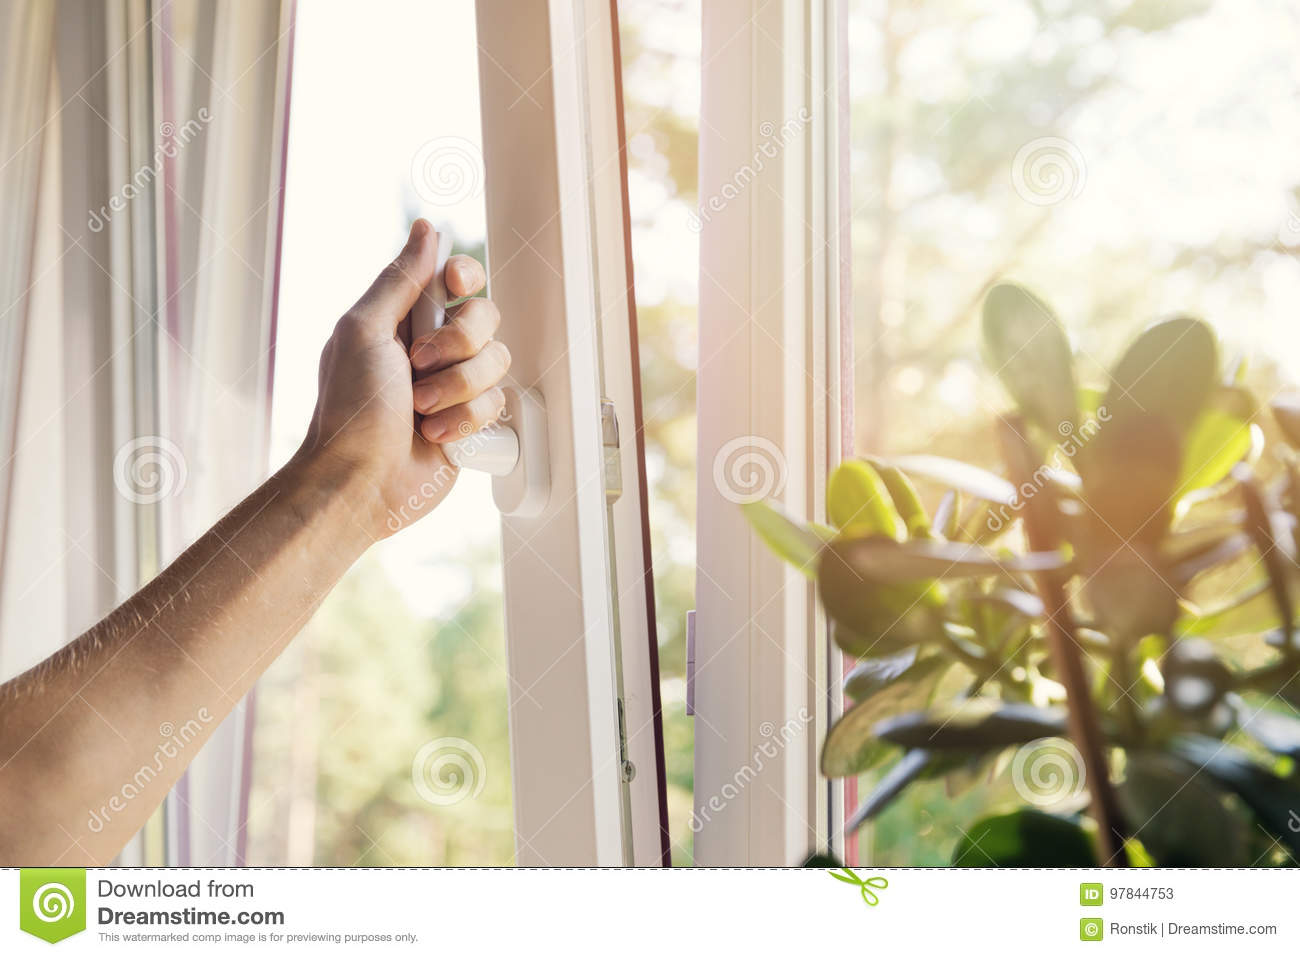 hand open plastic pvc window at home